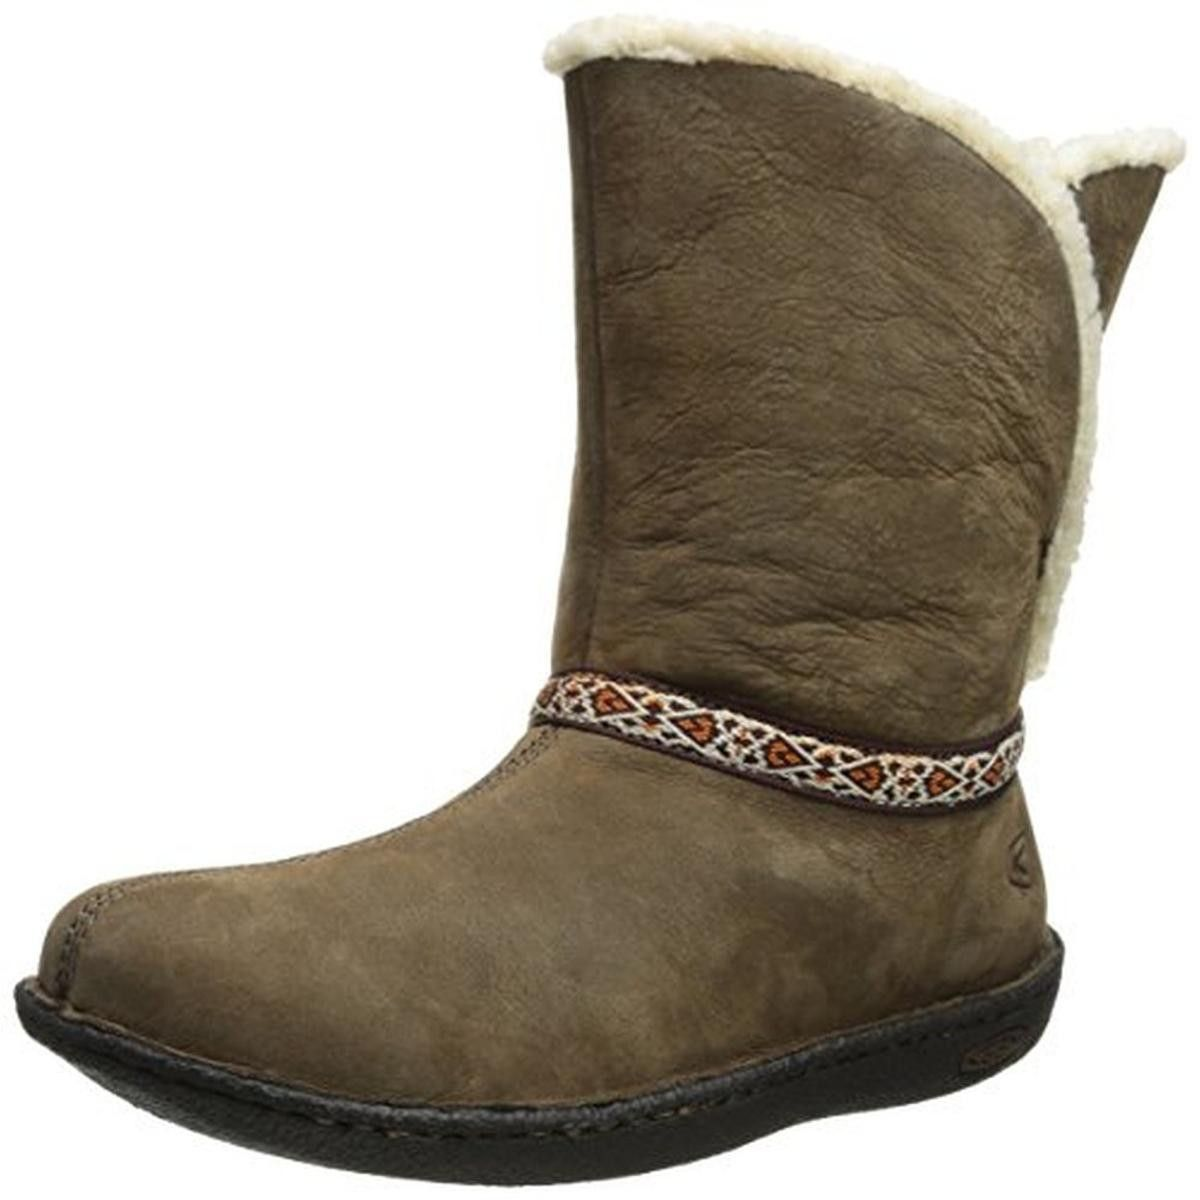 Manufacturer: Keen Size: Manufacturer Color: Retail: $130.00 Condition: Style Type: Winter Boots Collection: Keen - Shoe Width: Heel Height (Inches): Inches Platform Height (Inches): Inches Shaft Heig